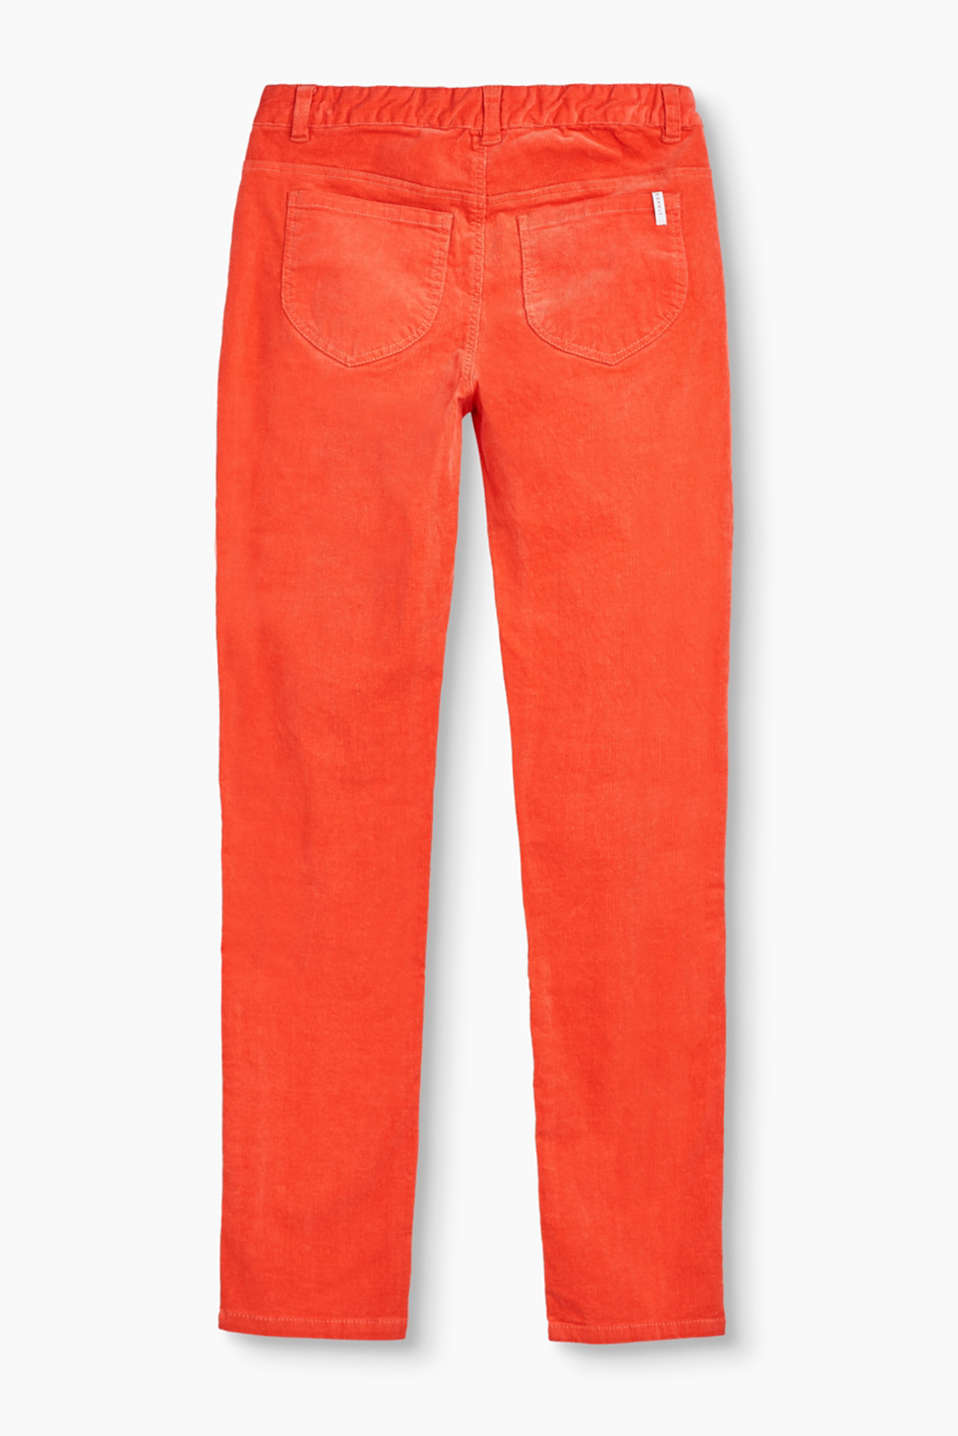 Velvety corduroy trousers in stretchy cotton